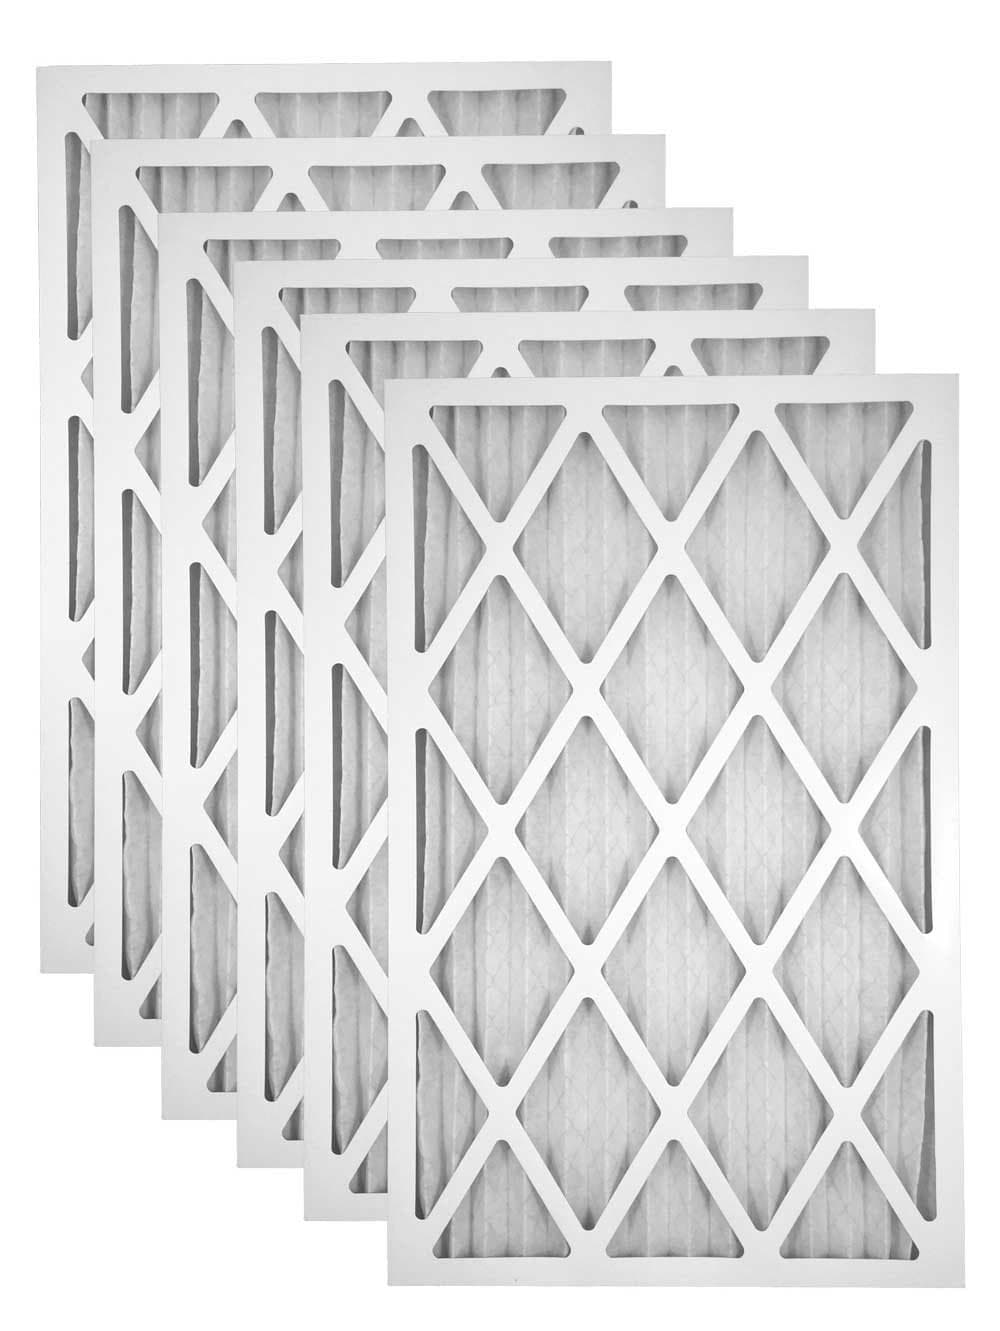 14x15.5x1 Merv 13 AC Furnace Filter - Case of 6